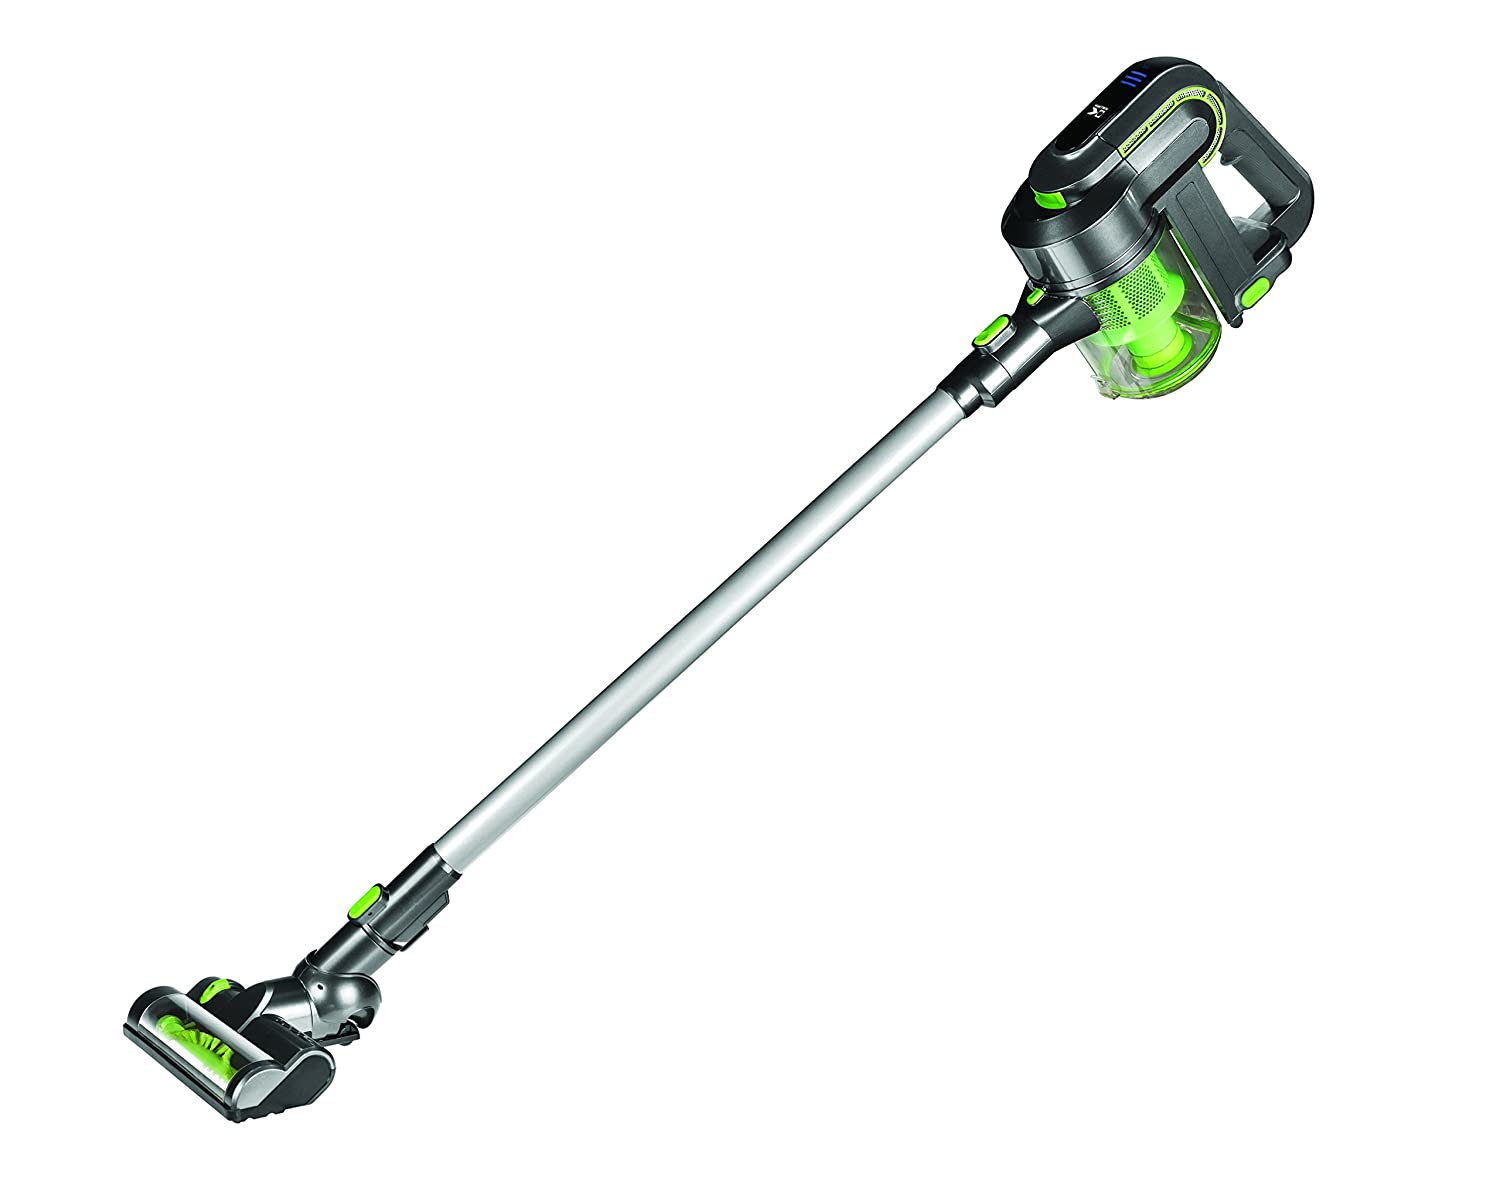 Kalorik VC 42475 L Green/Silver Cleaner 2-in-1 Cordless Cyclonic Vacuum